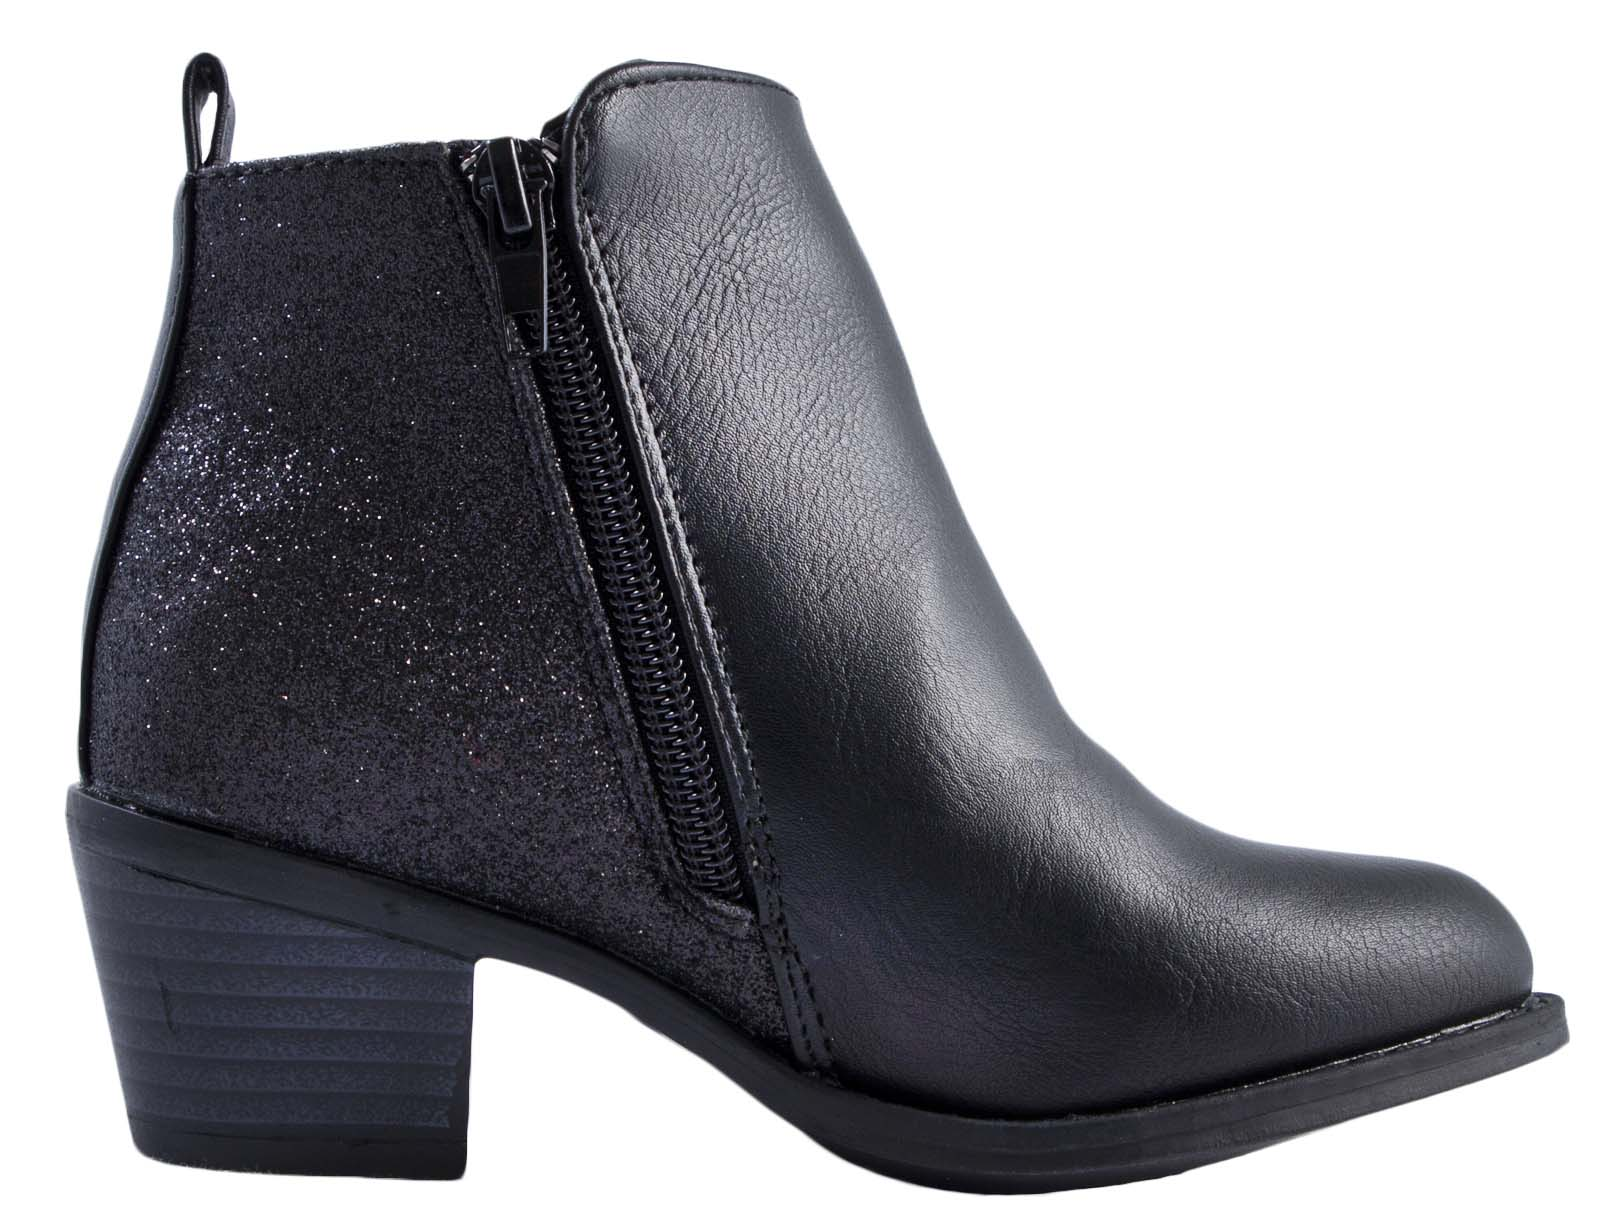 Details about Girls Faux Leather Chelsea Ankle Boots Snake Glitter Low Heel  Winter Shoes Size